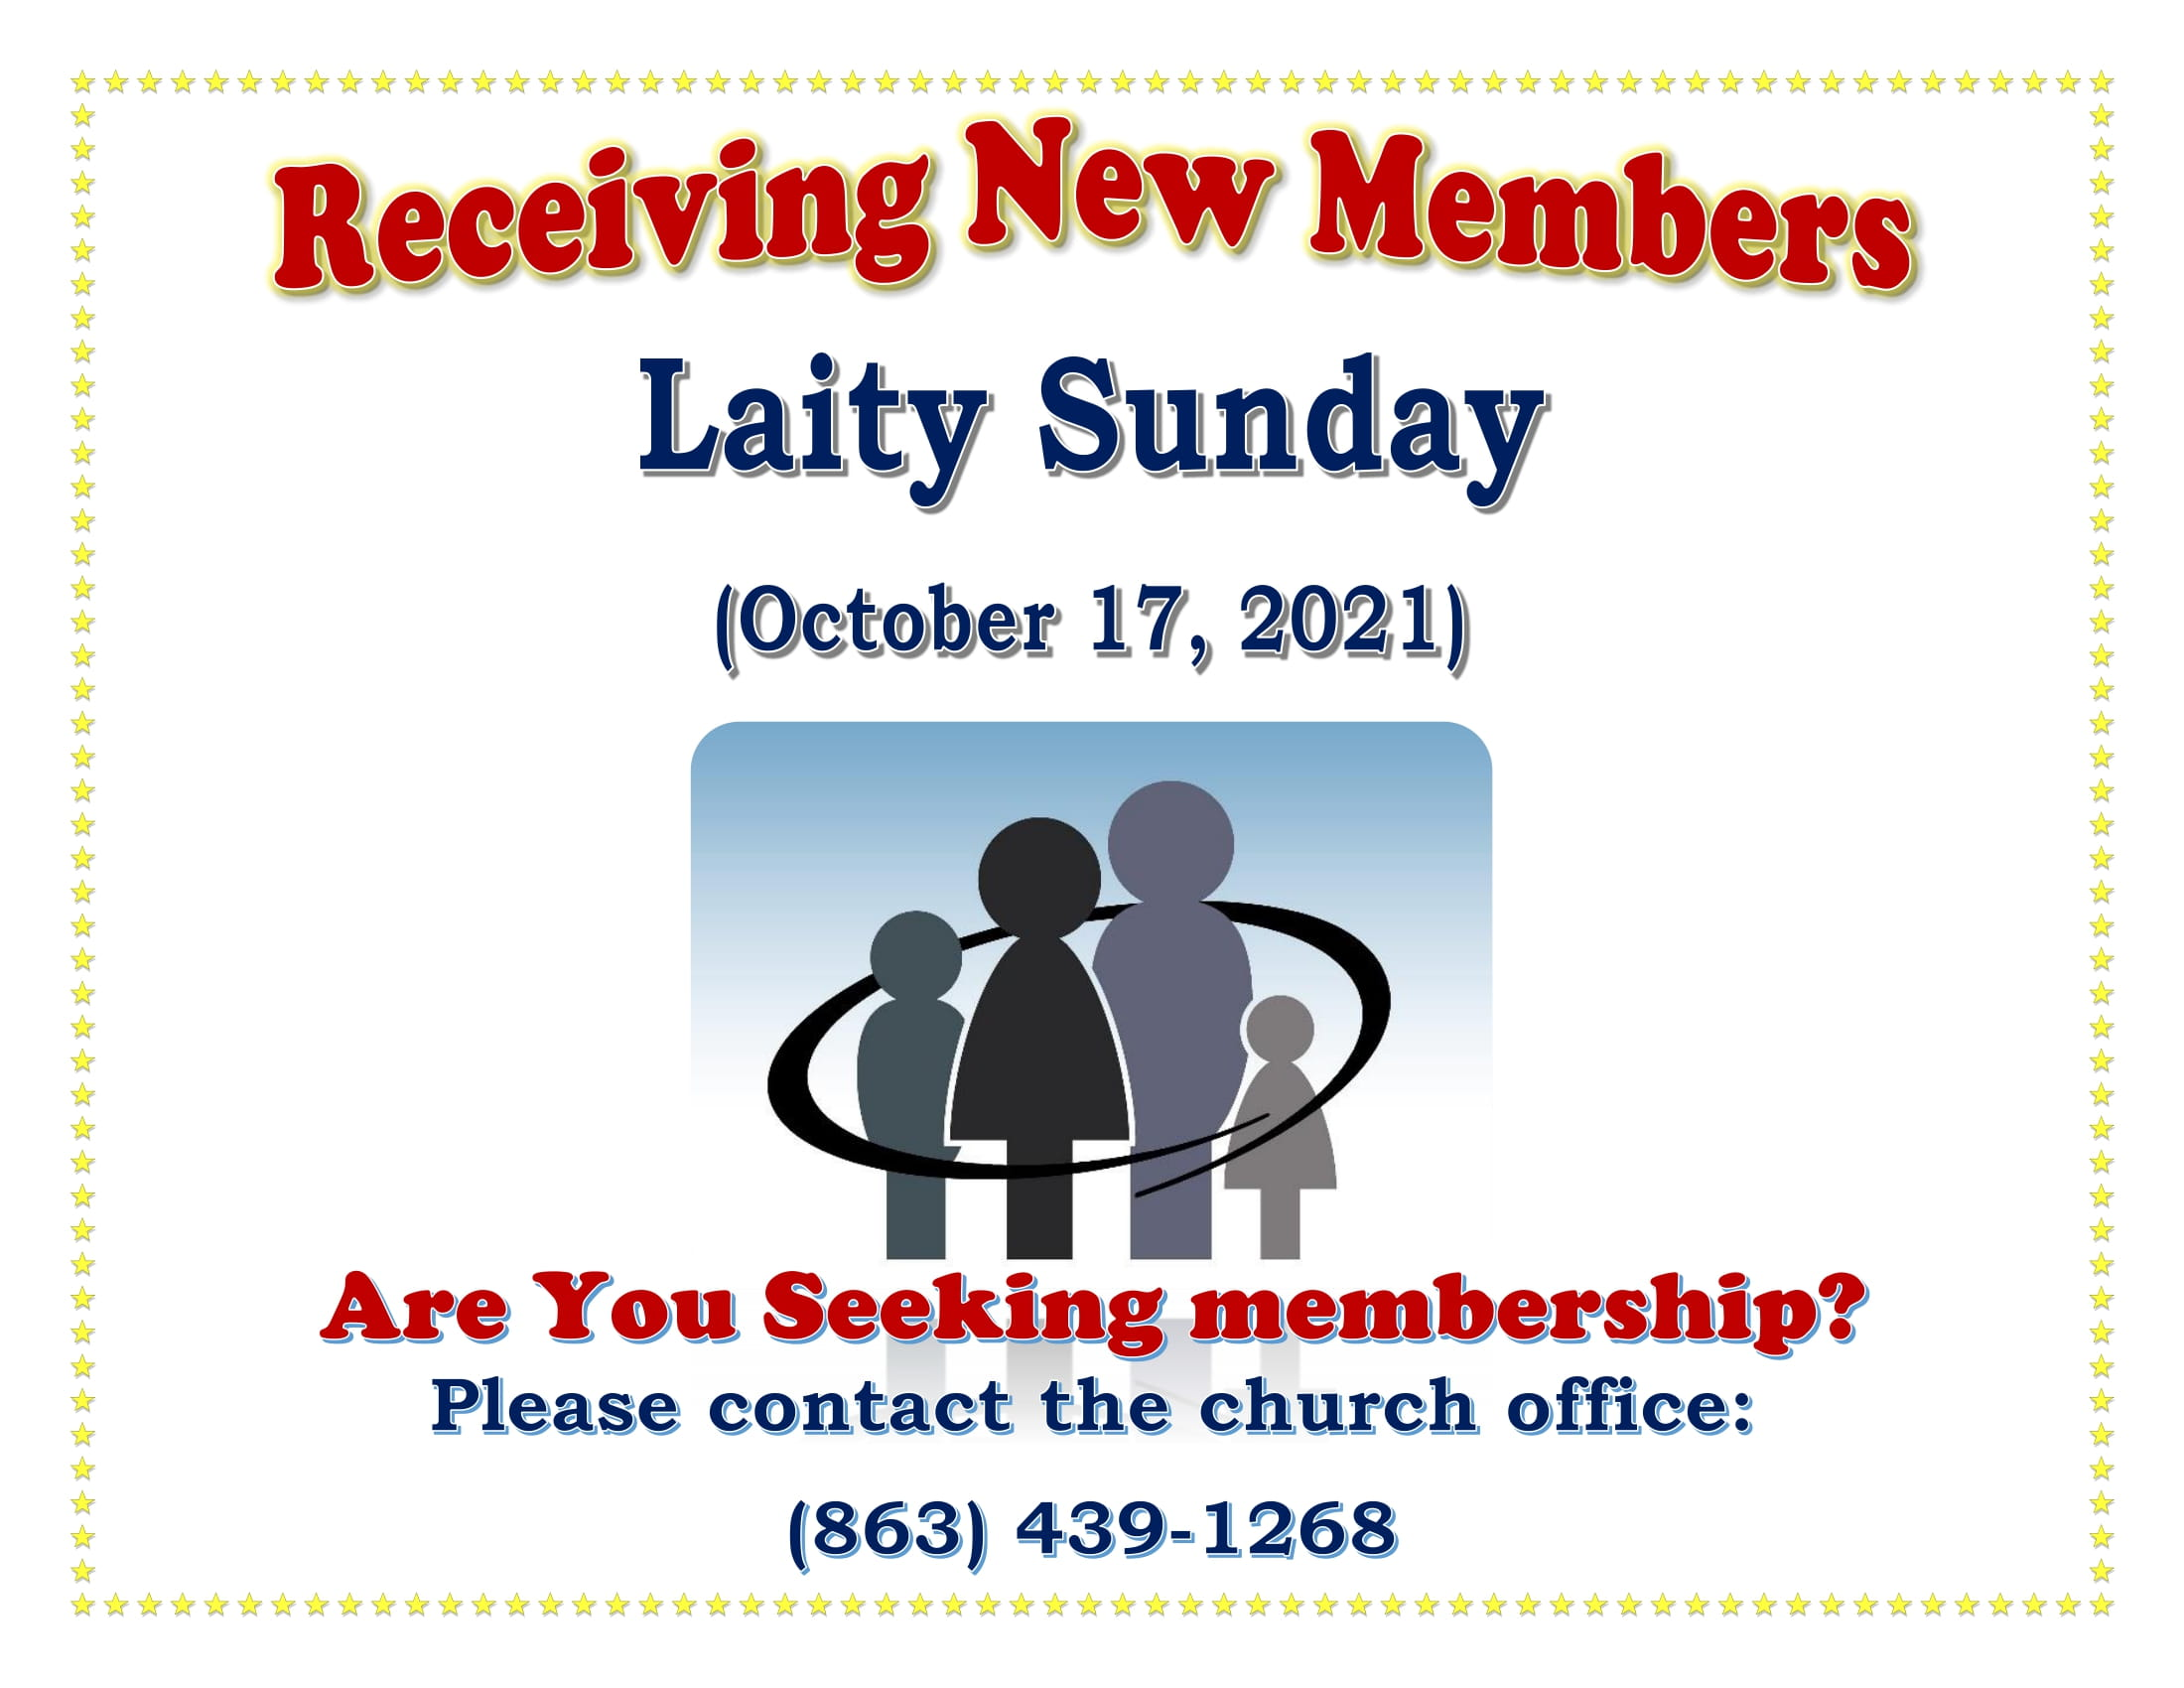 Receiving New Members (Laity Sunday)